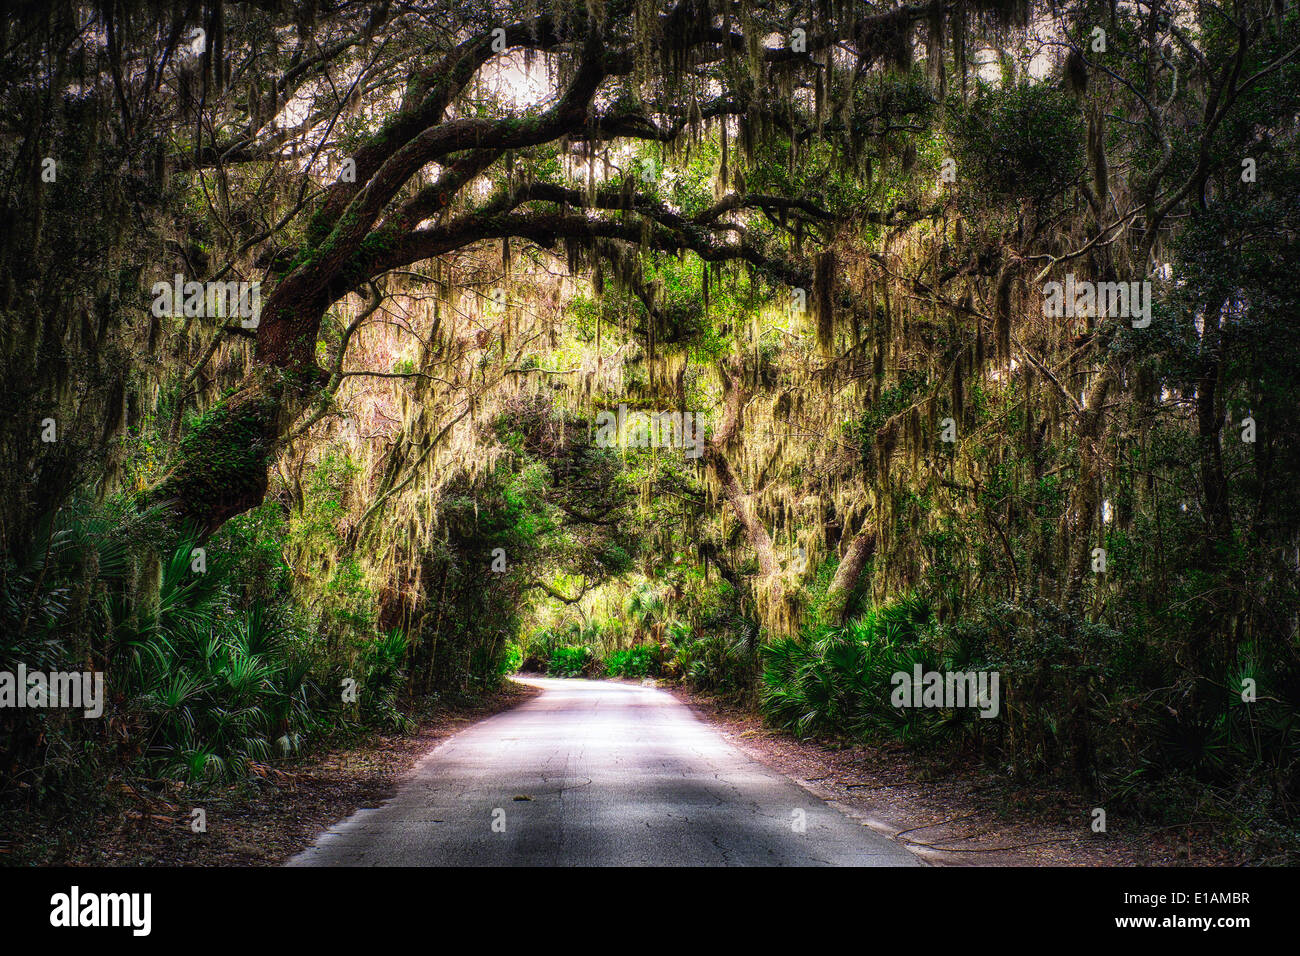 Southern Plantation Road with Tree Canopy with Spanish Moss Hanging from Trees, Amelia Island, Nassau County, Florida - Stock Image